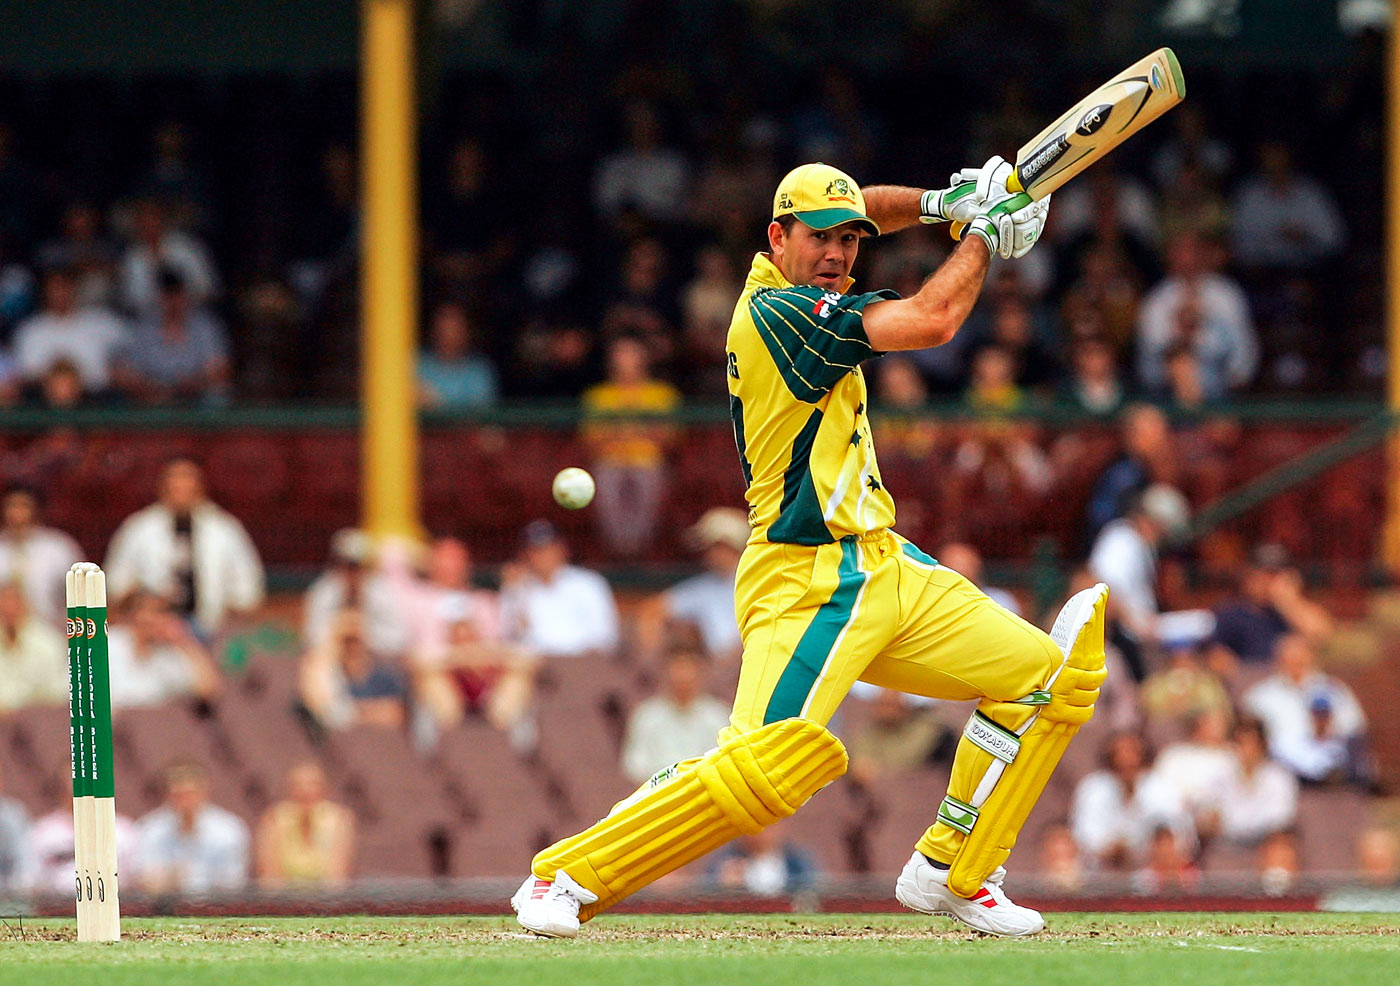 Ricky Ponting: 'Modern batting is about scoring 360 degrees' | The Cricket Monthly | ESPN Cricinfo